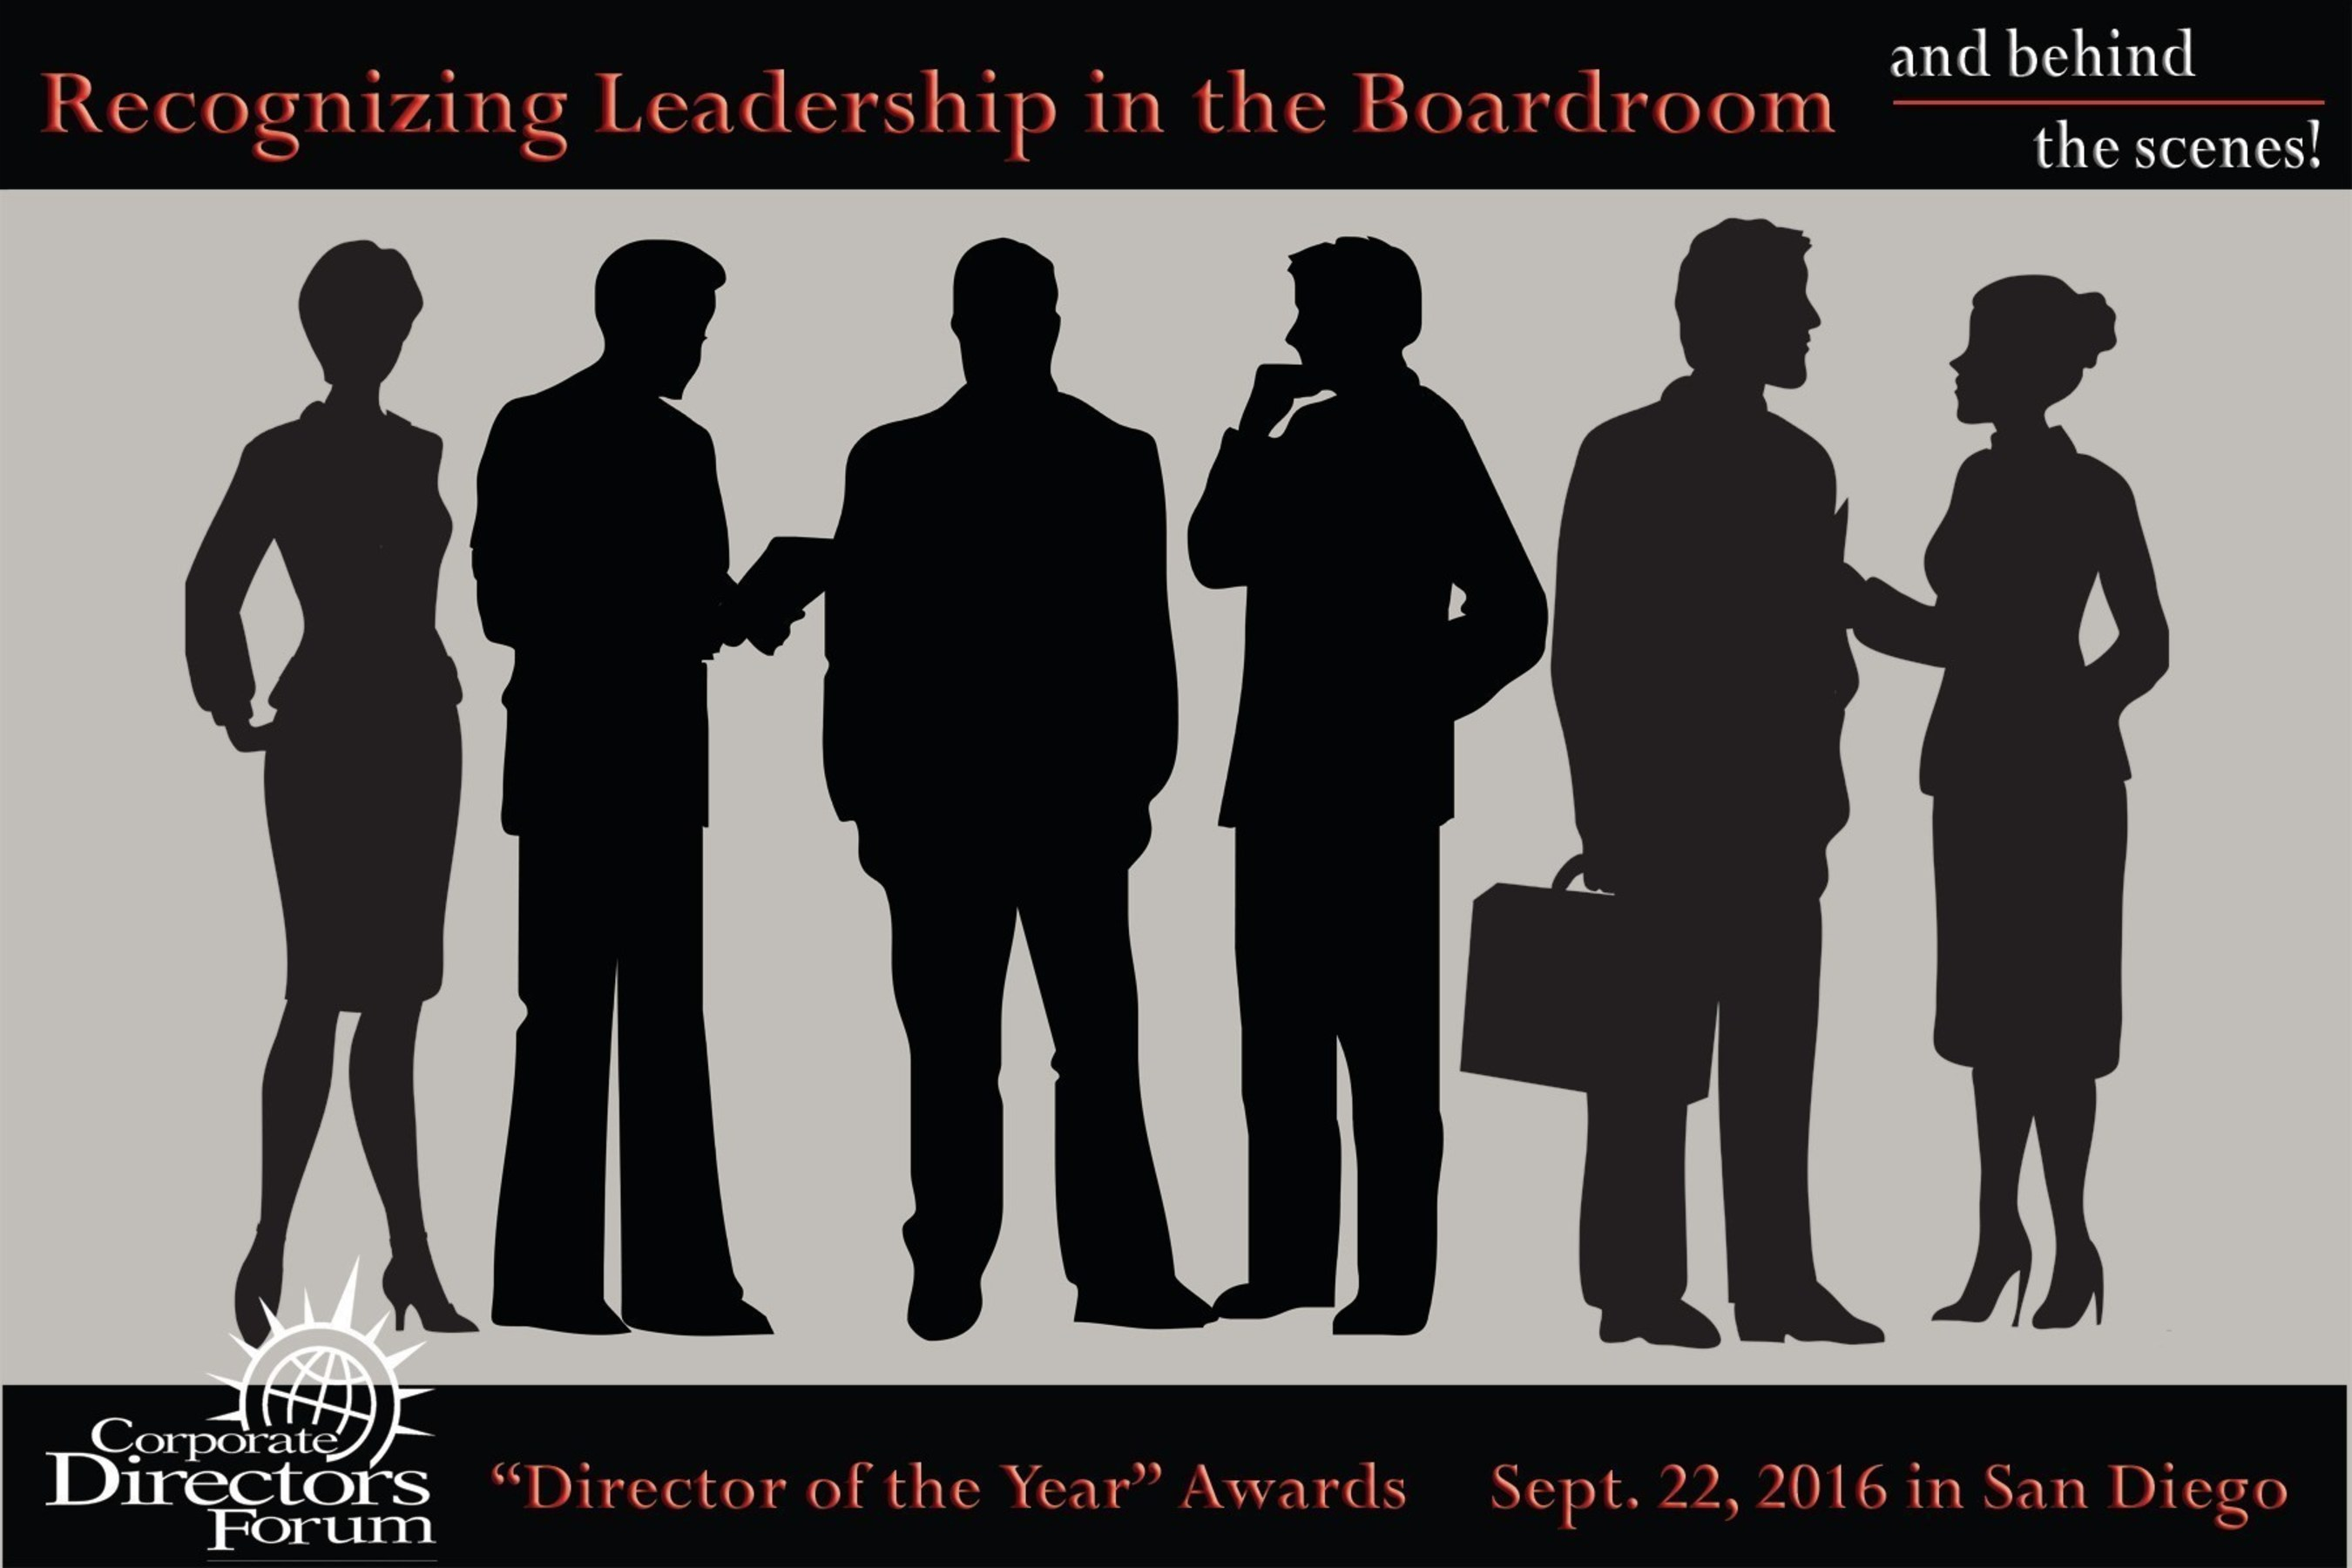 Corporate Directors Forum Recognizes Leadership in the Boardroom and Behind the Scenes, Sept. 22, 2016 in San Diego